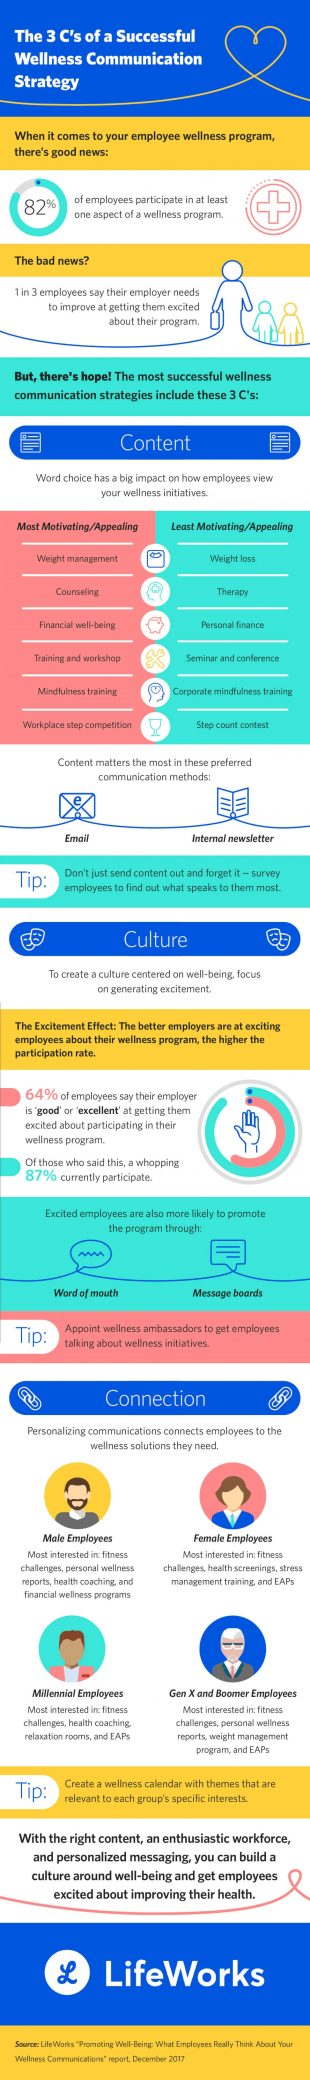 To Build a Wellness-Centric Workplace Culture, Consider Employee Needs [Infographic]